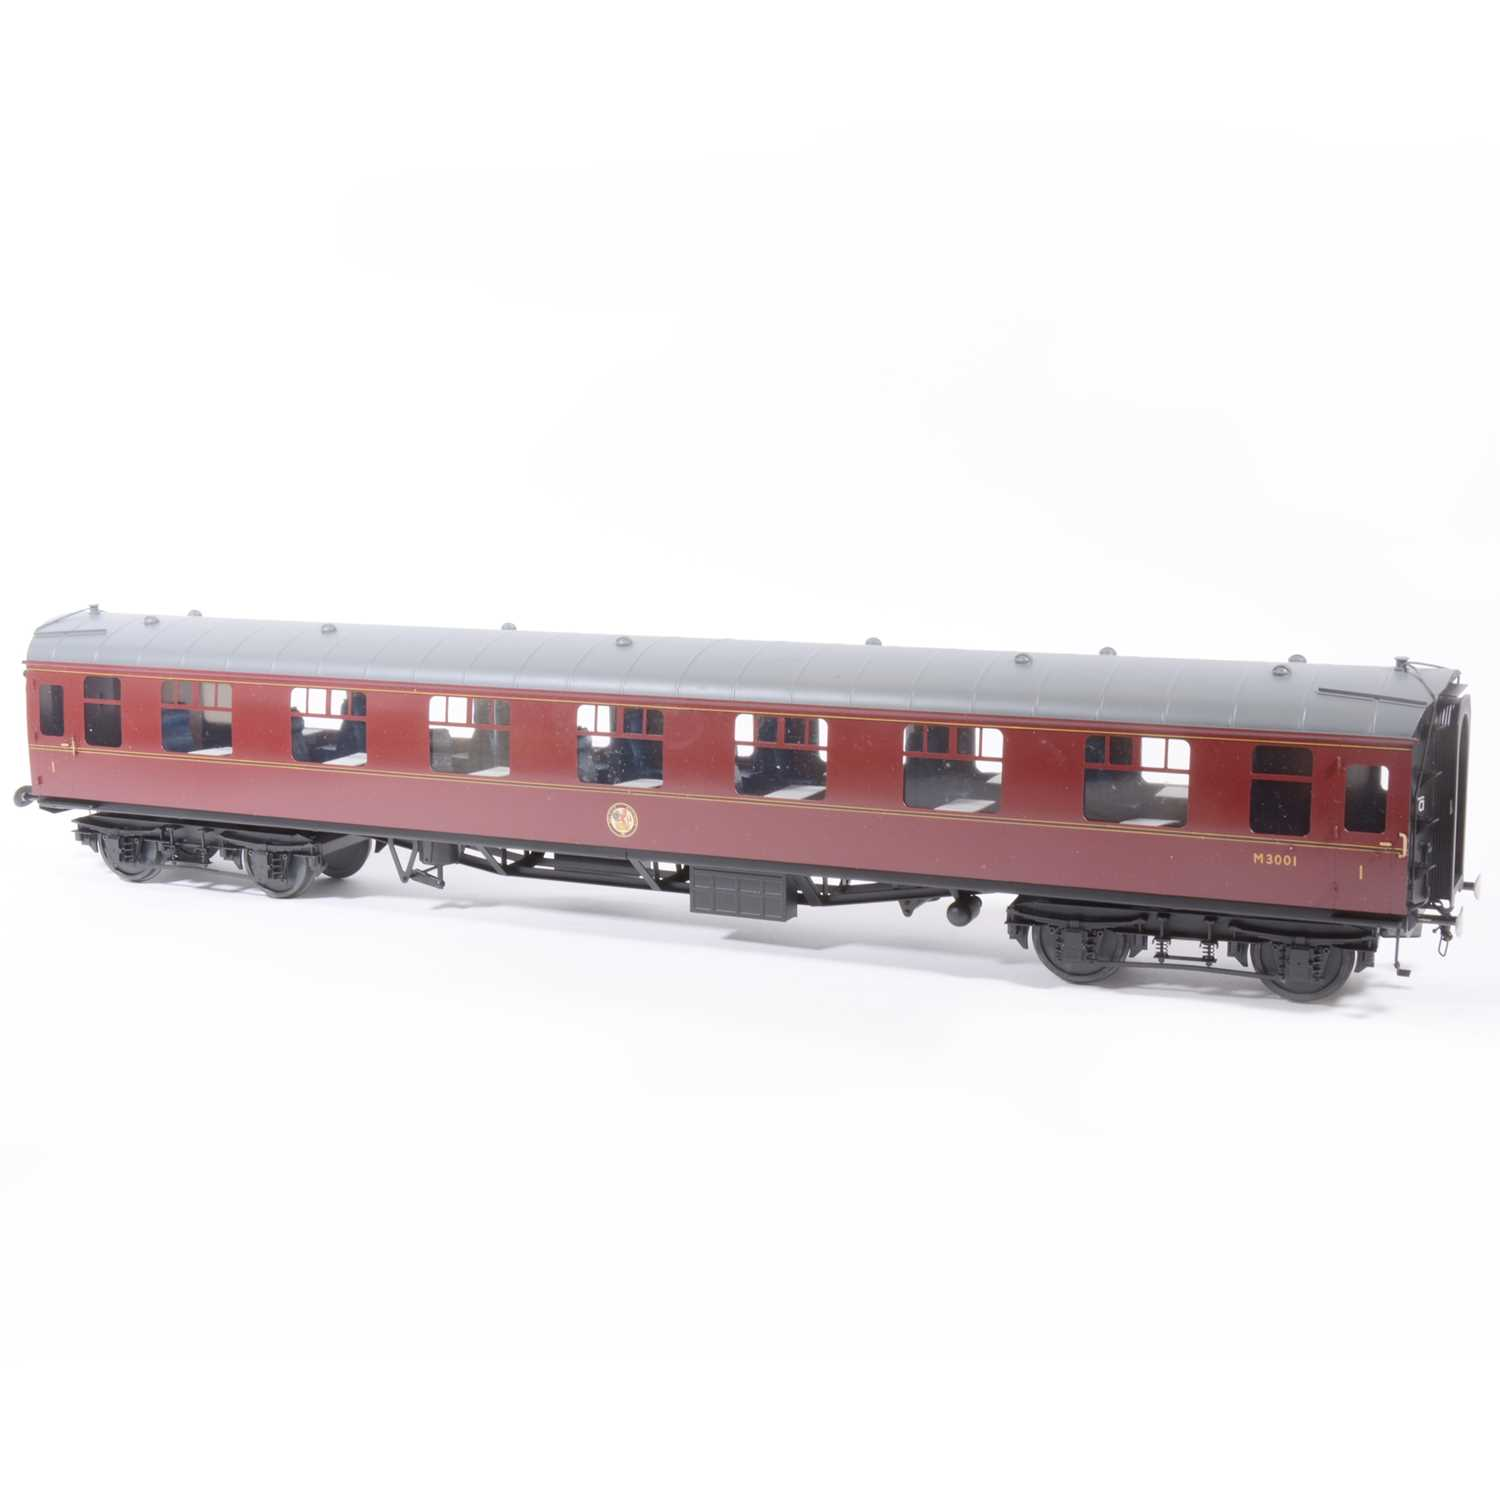 65 - Tower Brass Models, gauge 1 / G scale, 45mm passenger coach, BR maroon no.M3001, boxed.